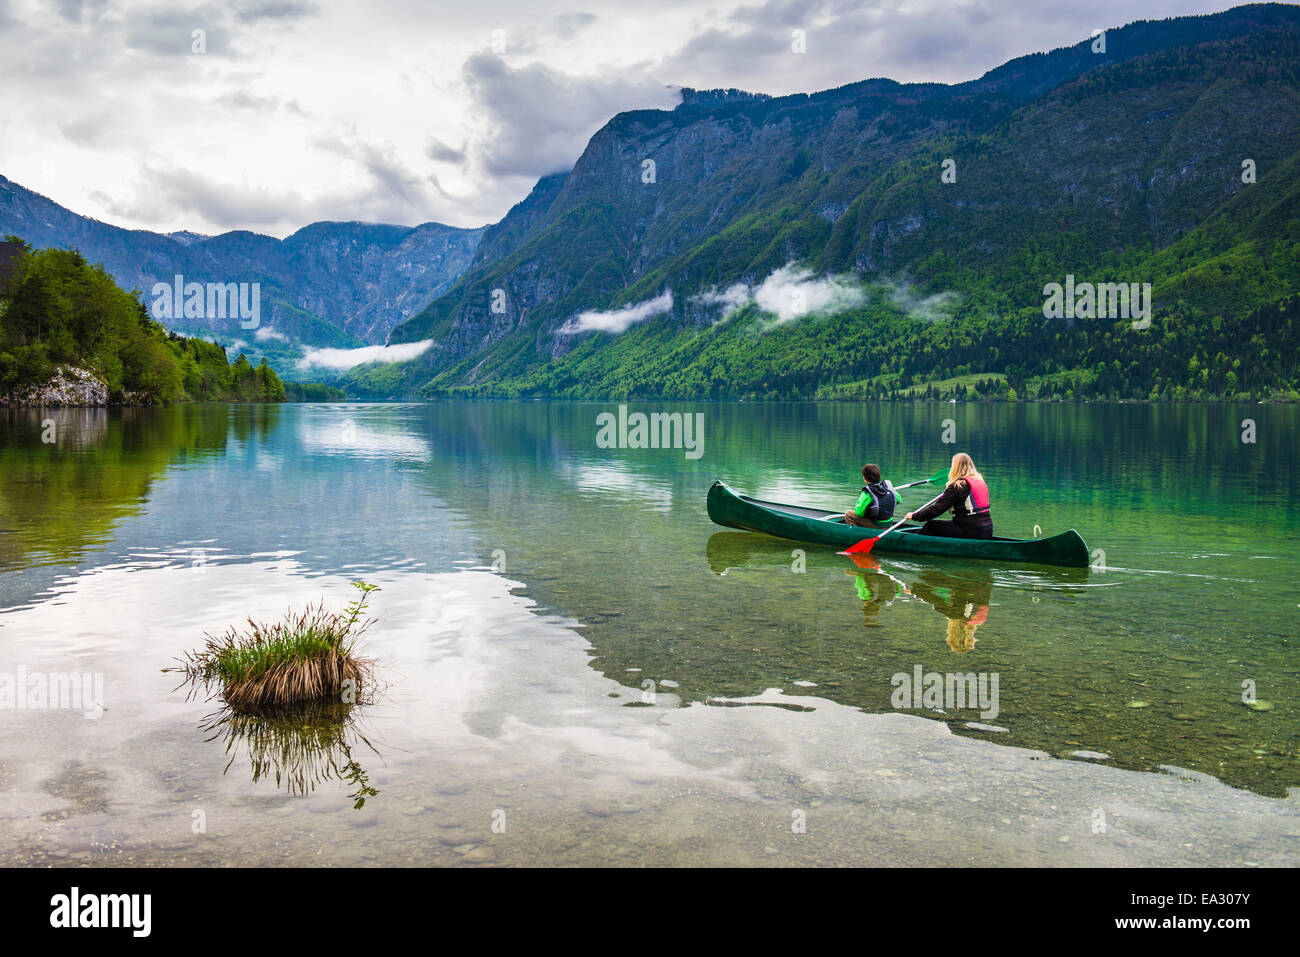 Mother and son canoeing on Lake Bohinj, Triglav National Park, Julian Alps, Slovenia, Europe - Stock Image